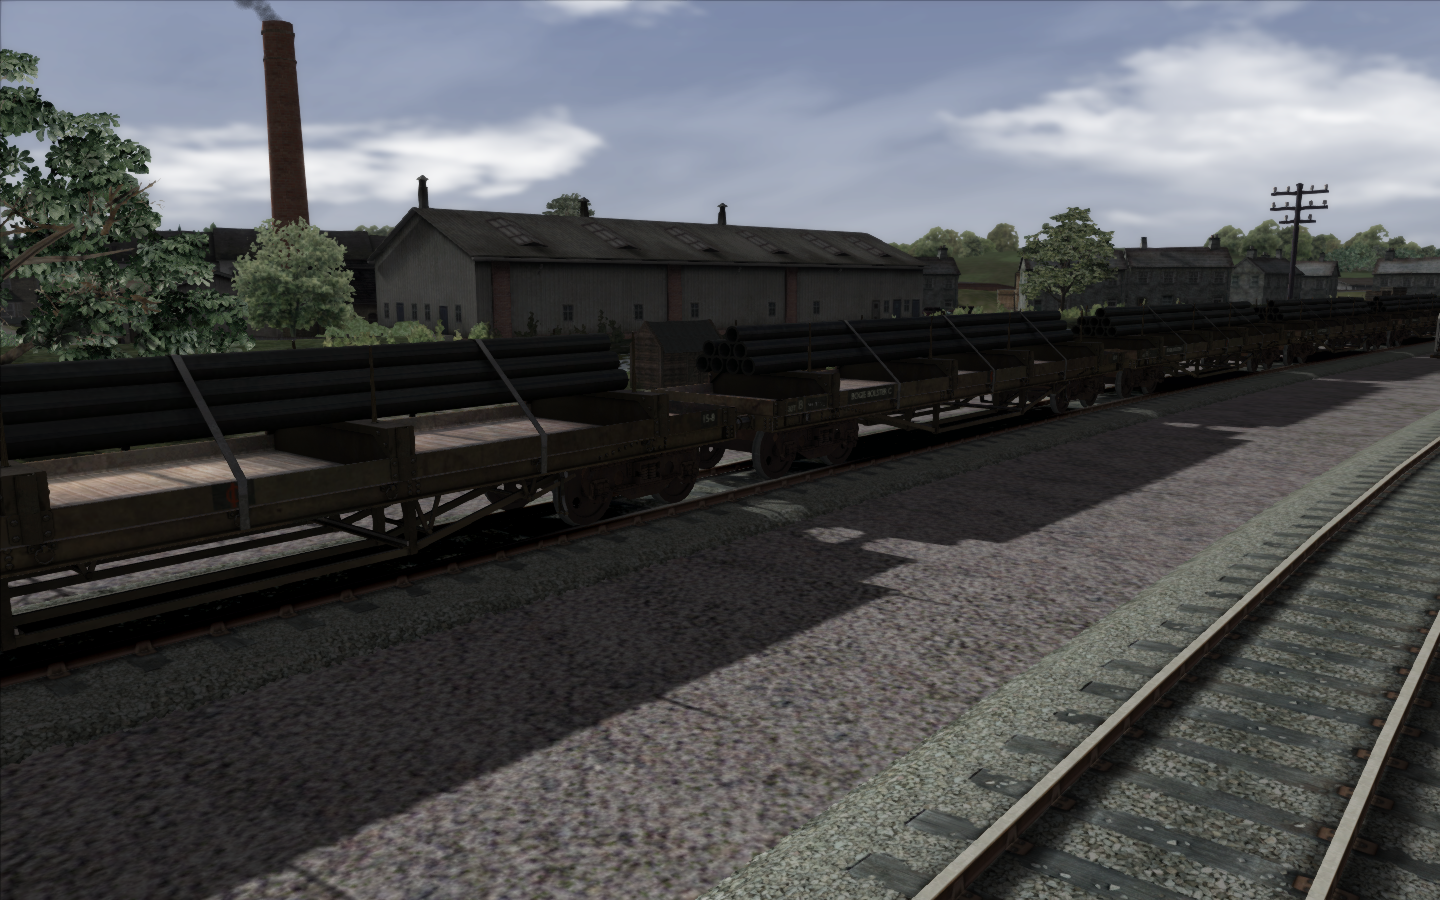 Screenshot_Bath Green Park To Templecombe_51.29268--2.44418_12-10-20.png